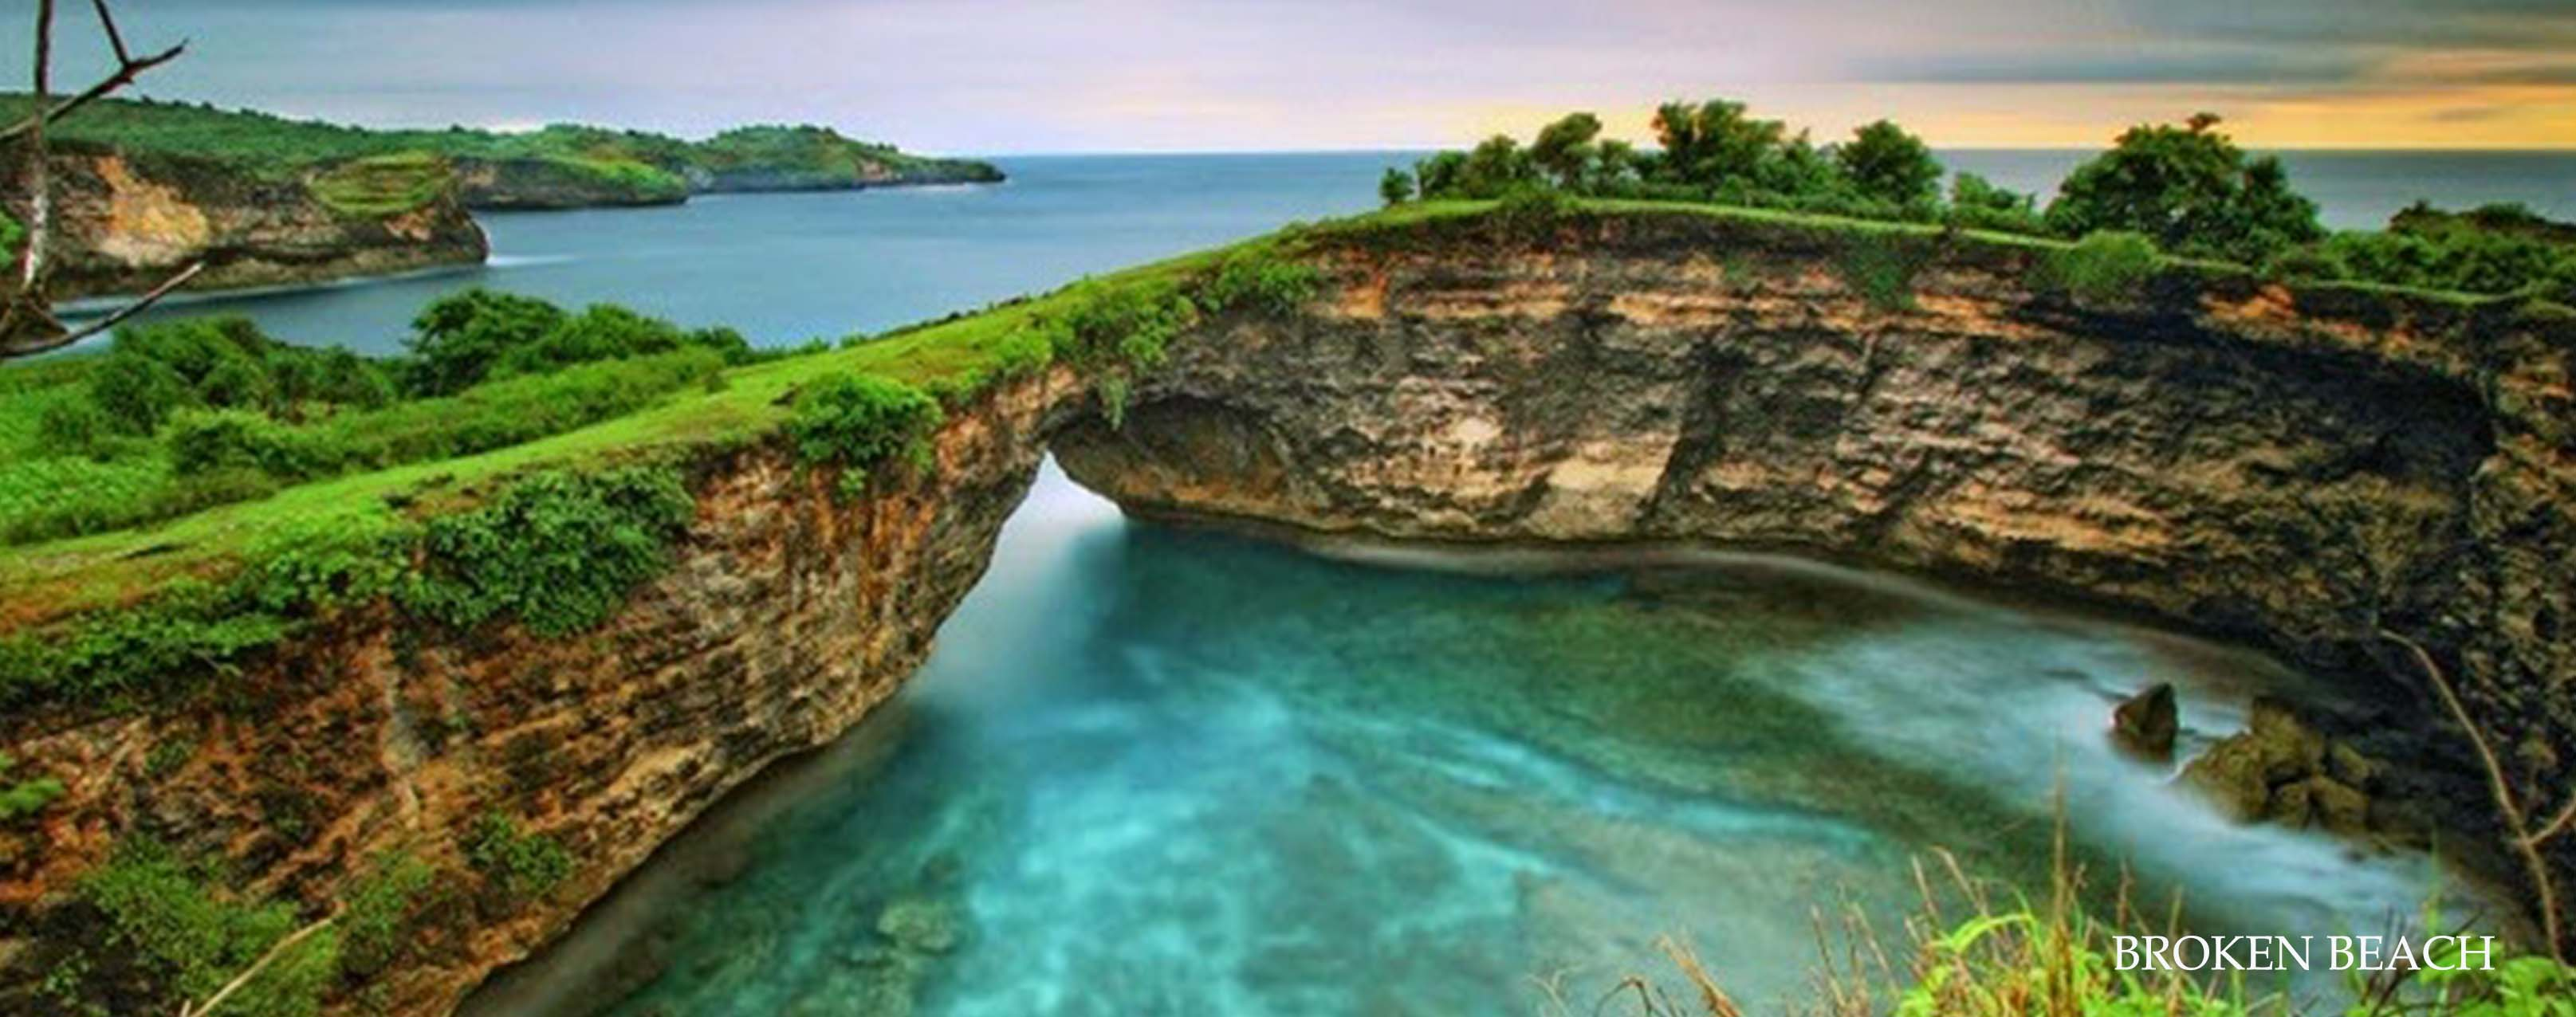 west nusa penida bali tour is broken beach